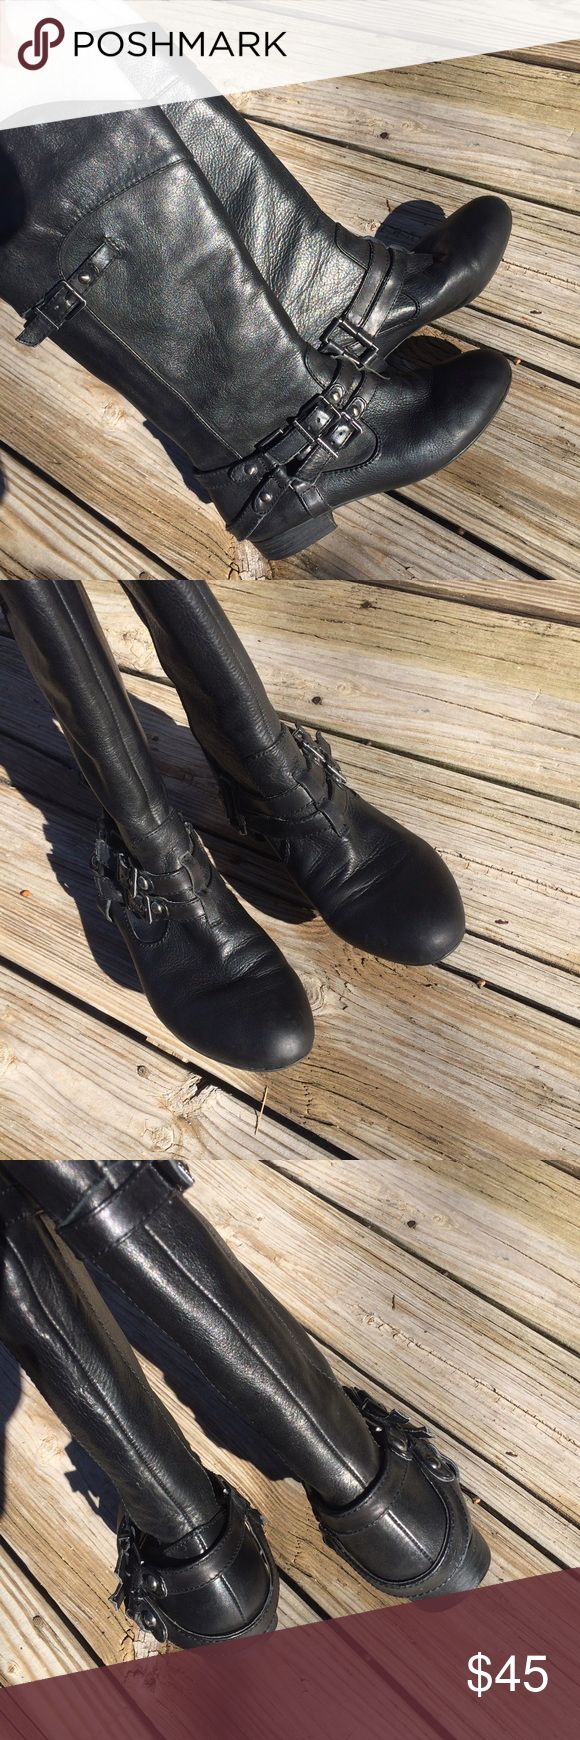 Gianni Bini Leather Boots Gianni Bini Leather Boots - Size 7 - Great condition, not worn many times. Thanks for looking Gianni Bini Shoes Combat & Moto Boots